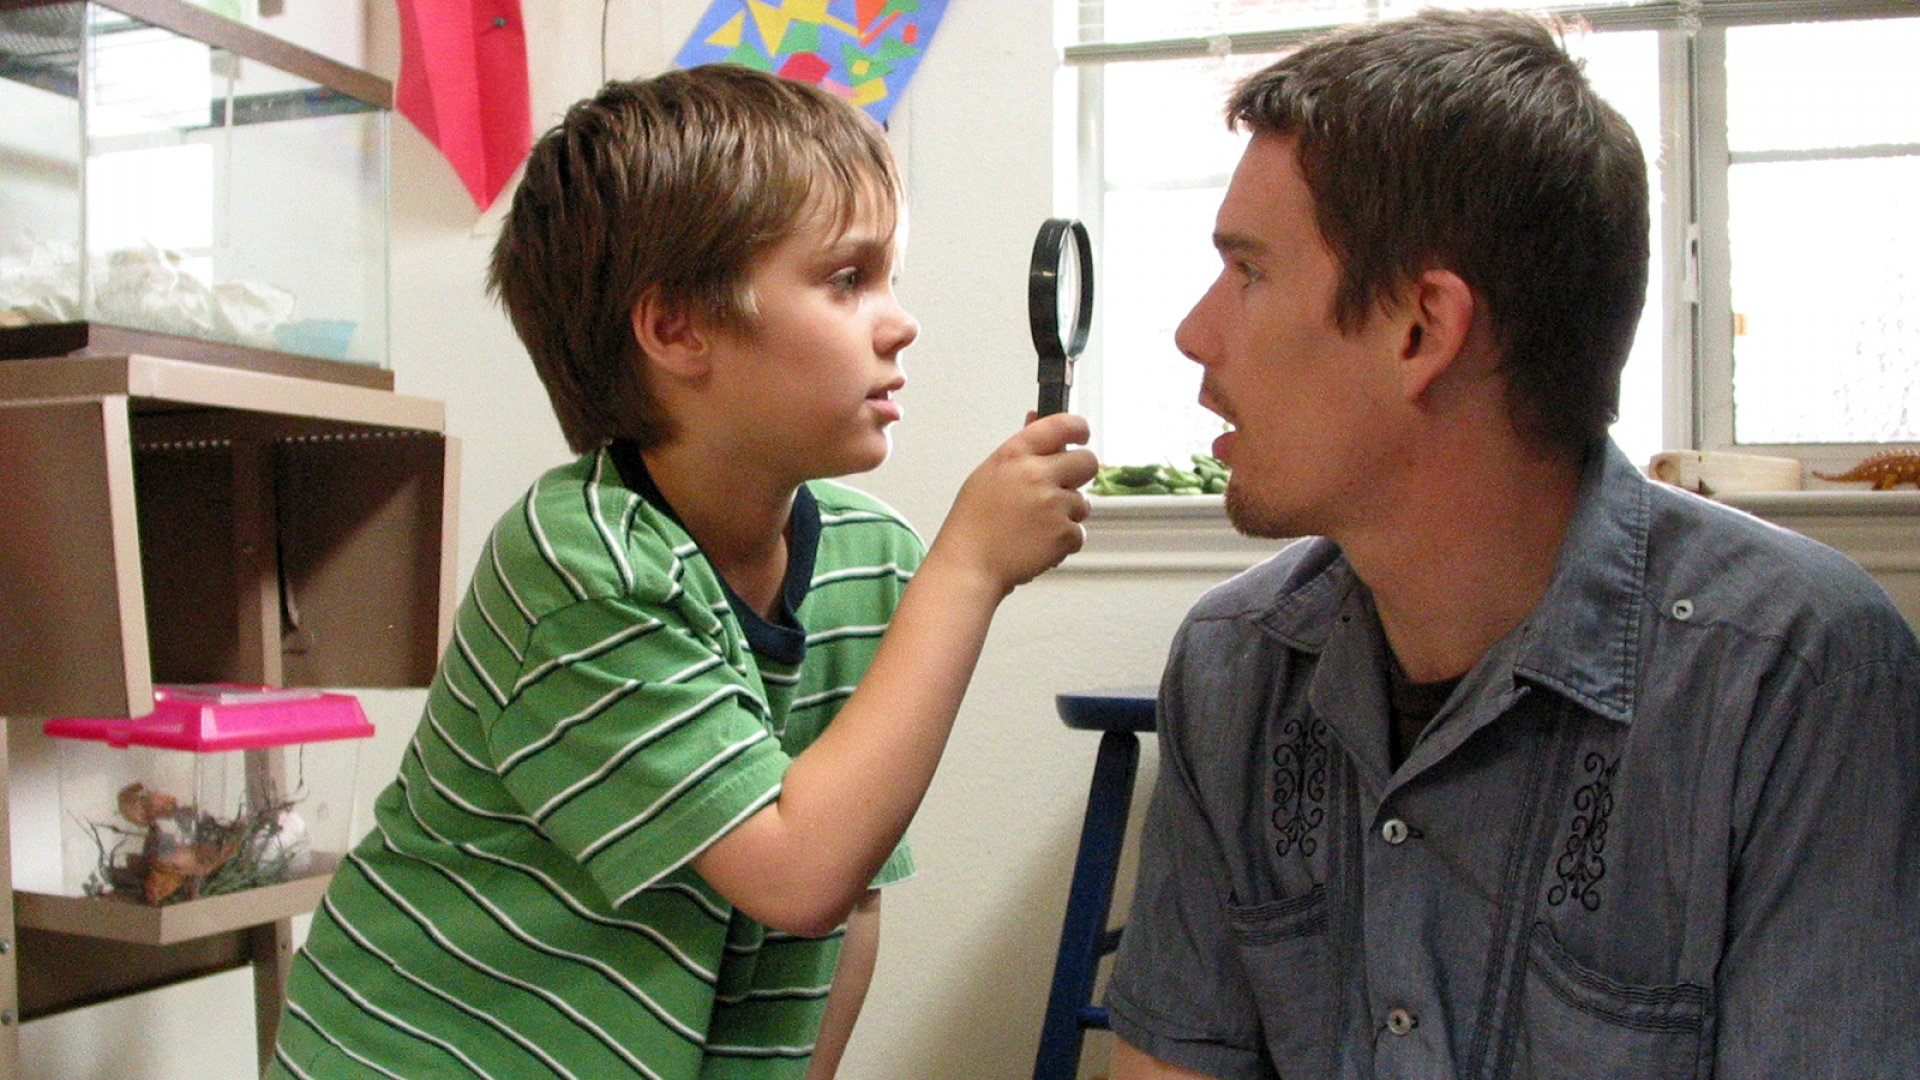 From left: Ellar Coltrane, Ethan Hawke in <i>Boyhood</i>.